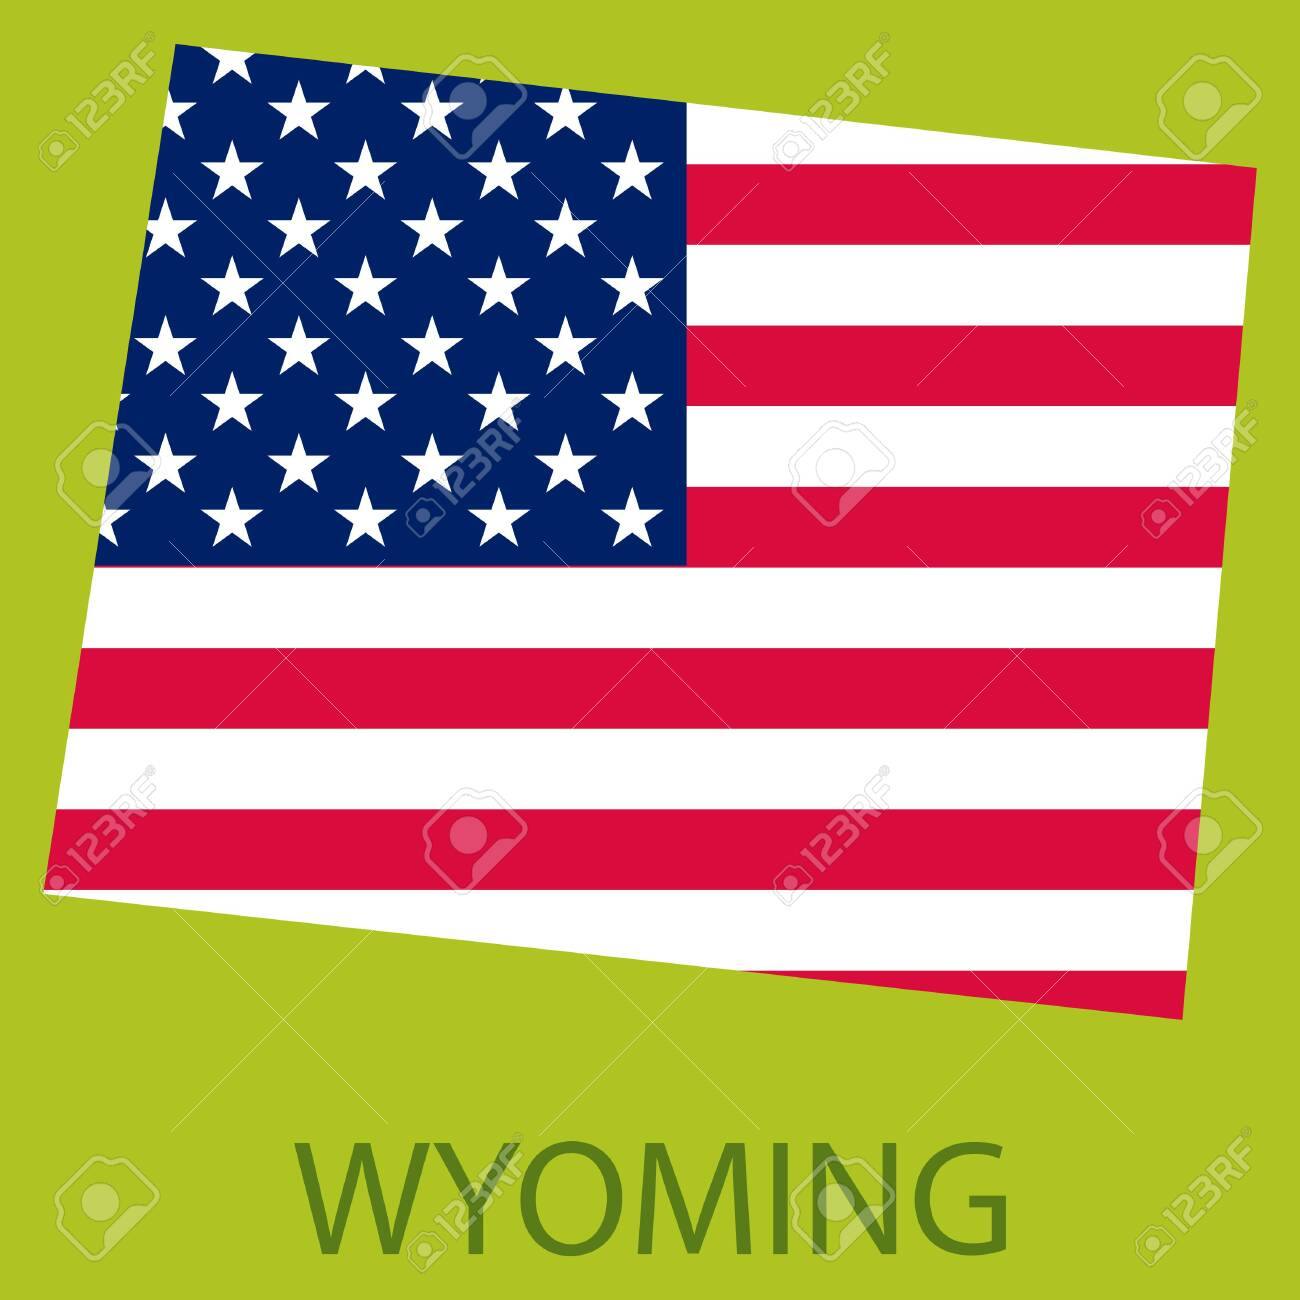 Wyoming state of America with map. Flag print on map of USA for.. on industrial map of usa, geographic features of us, geographic new york map, tree of usa, detailed map of usa, geopolitical map of usa, cultural map of usa, topographic map of usa, socioeconomic map of usa, geo maps usa, territorial map of usa, map all rivers of usa, historic map of usa, utm map of usa, geophysical map of usa, functional map of usa, history map of usa, gis map of usa, business map of usa, transportation map of usa,